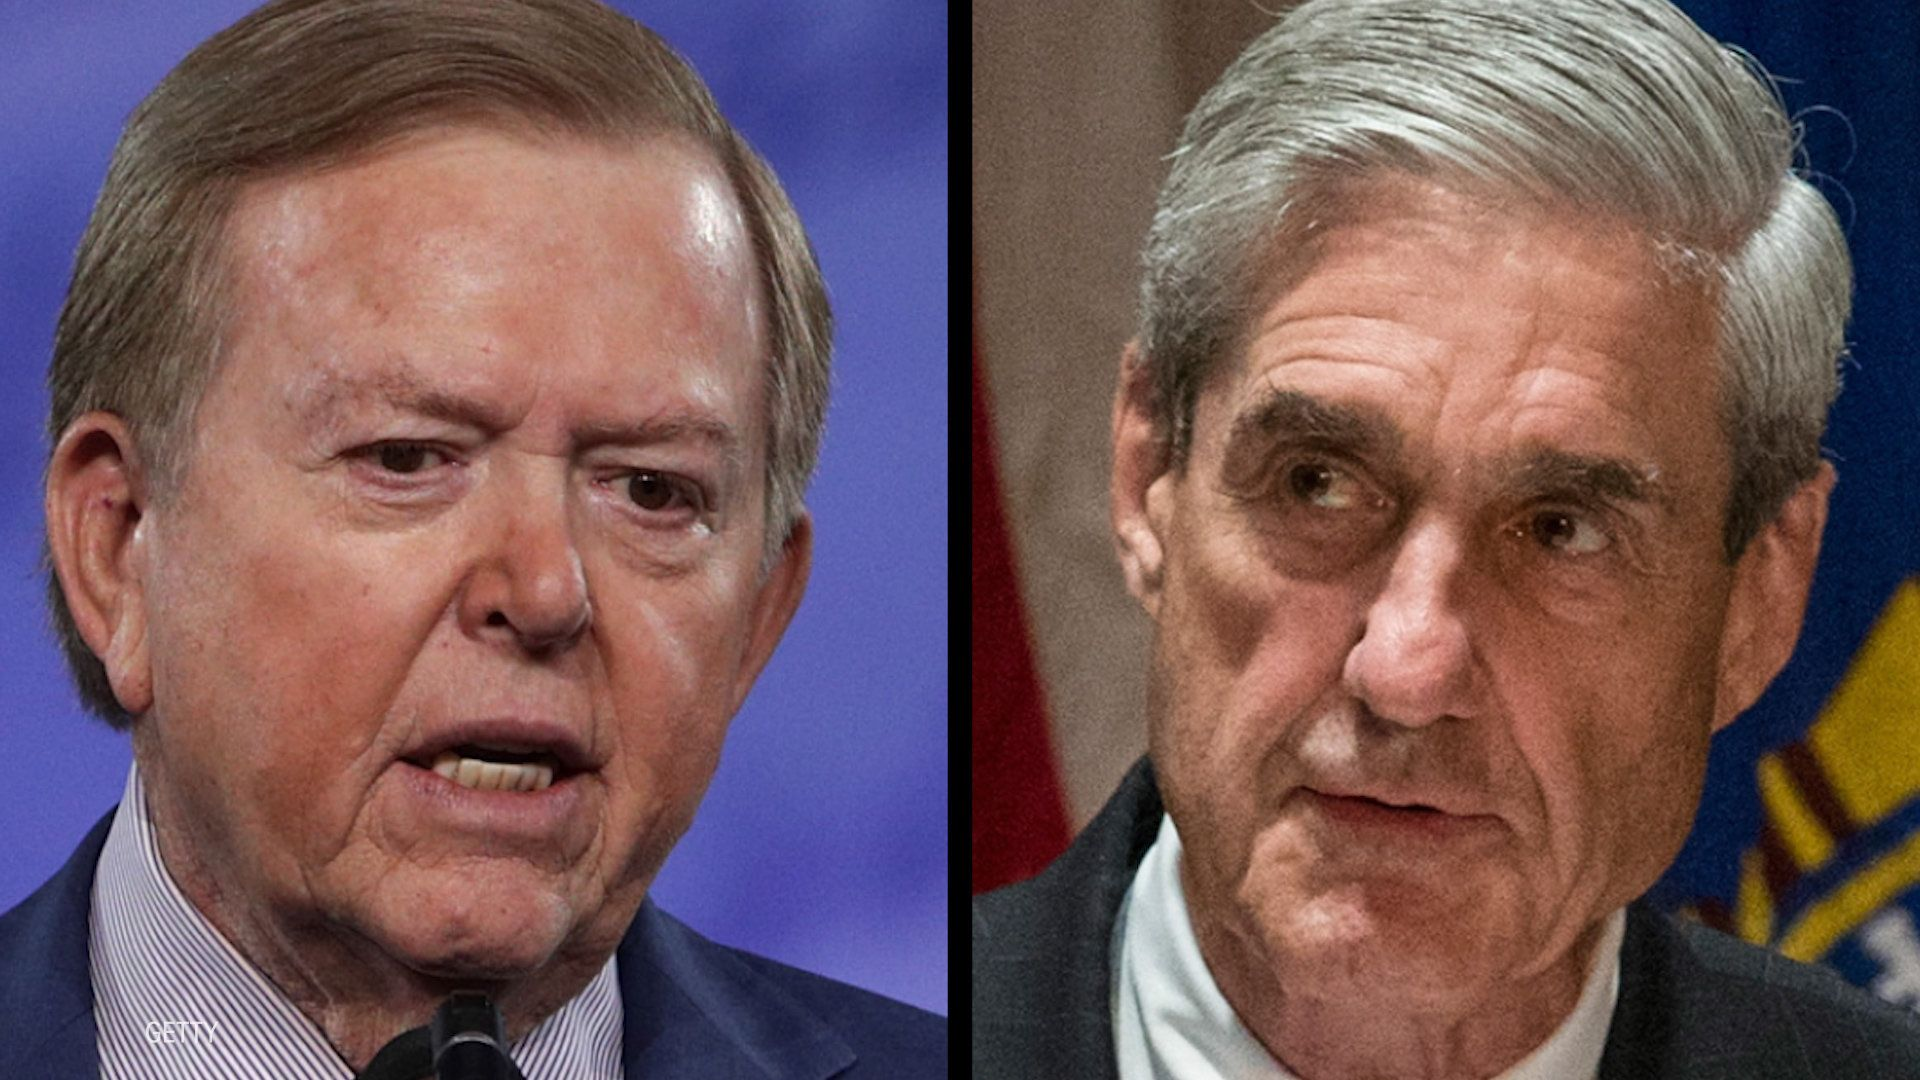 Lou Dobbs unleashed on special counsel Mueller and vehemently defended President Trump